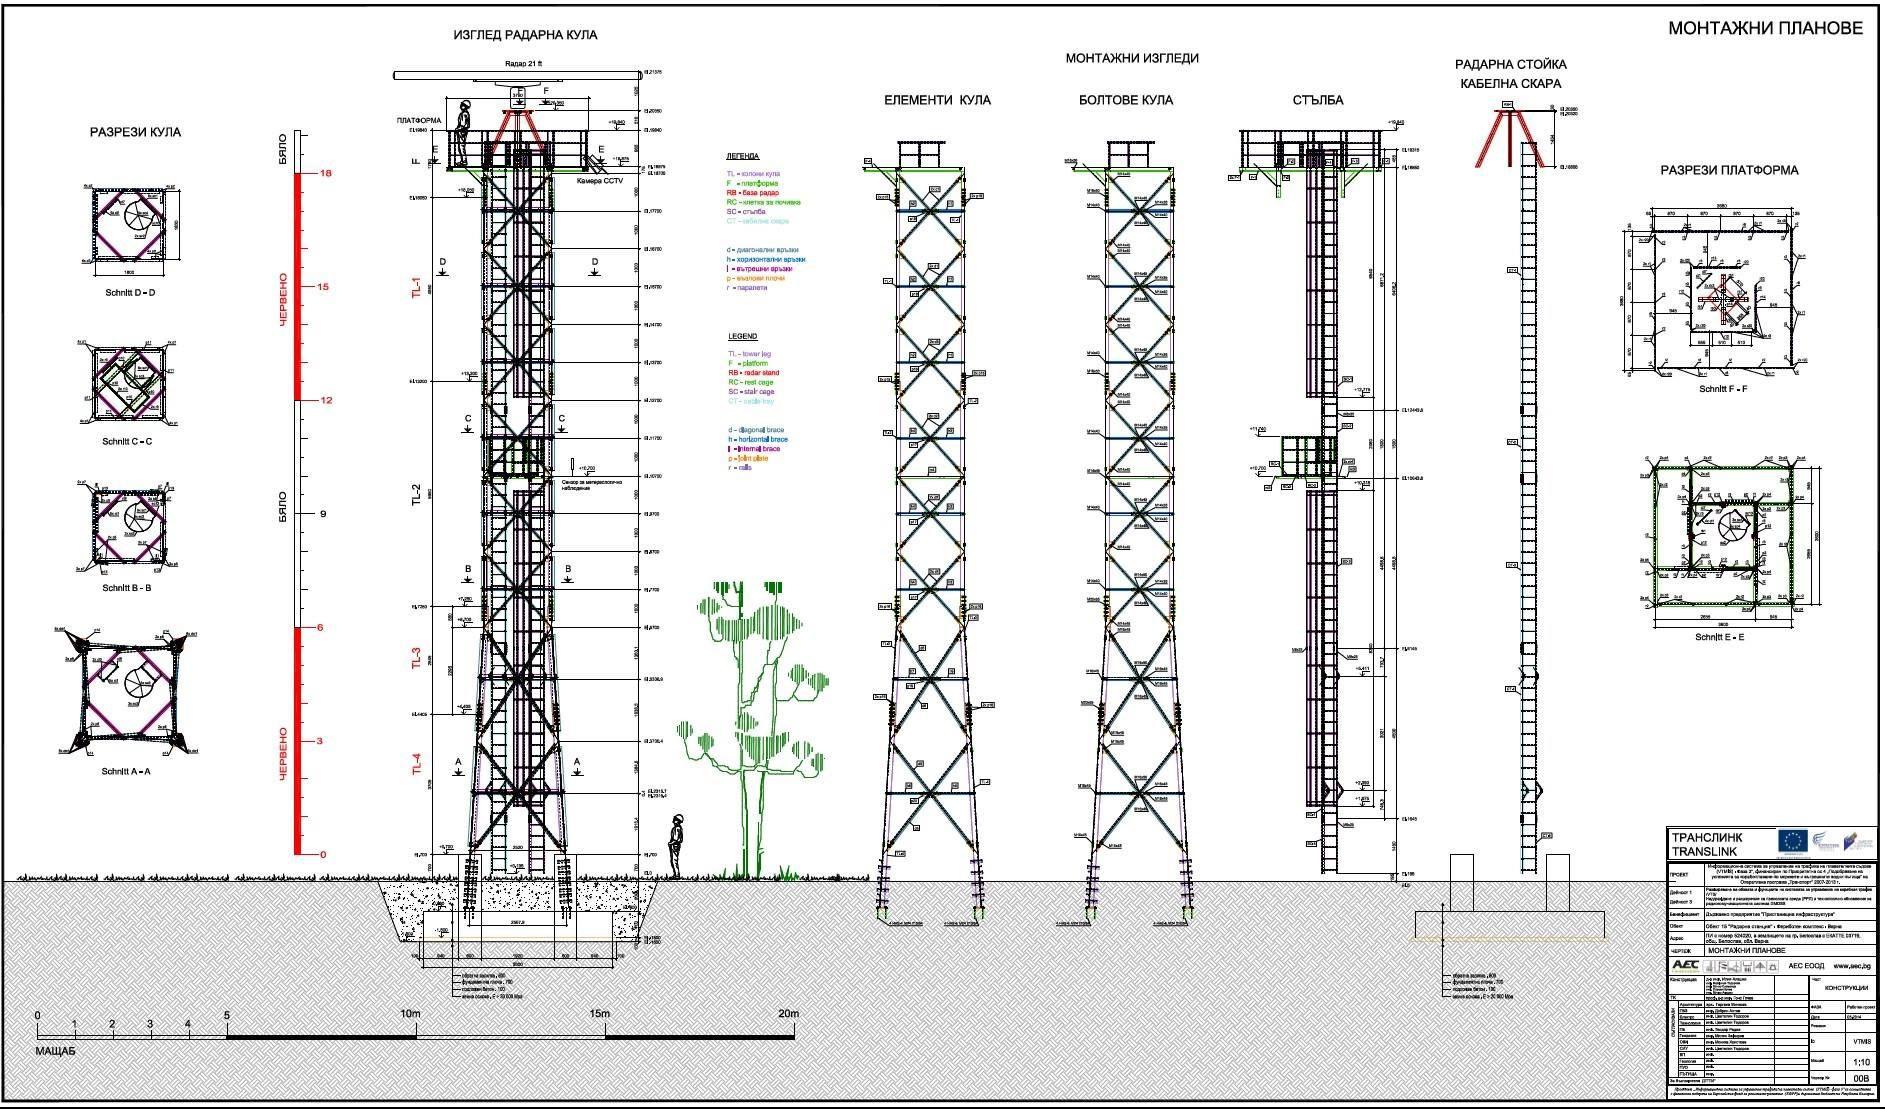 Lattice Tower - Translink Telecomunication Towers - Shop